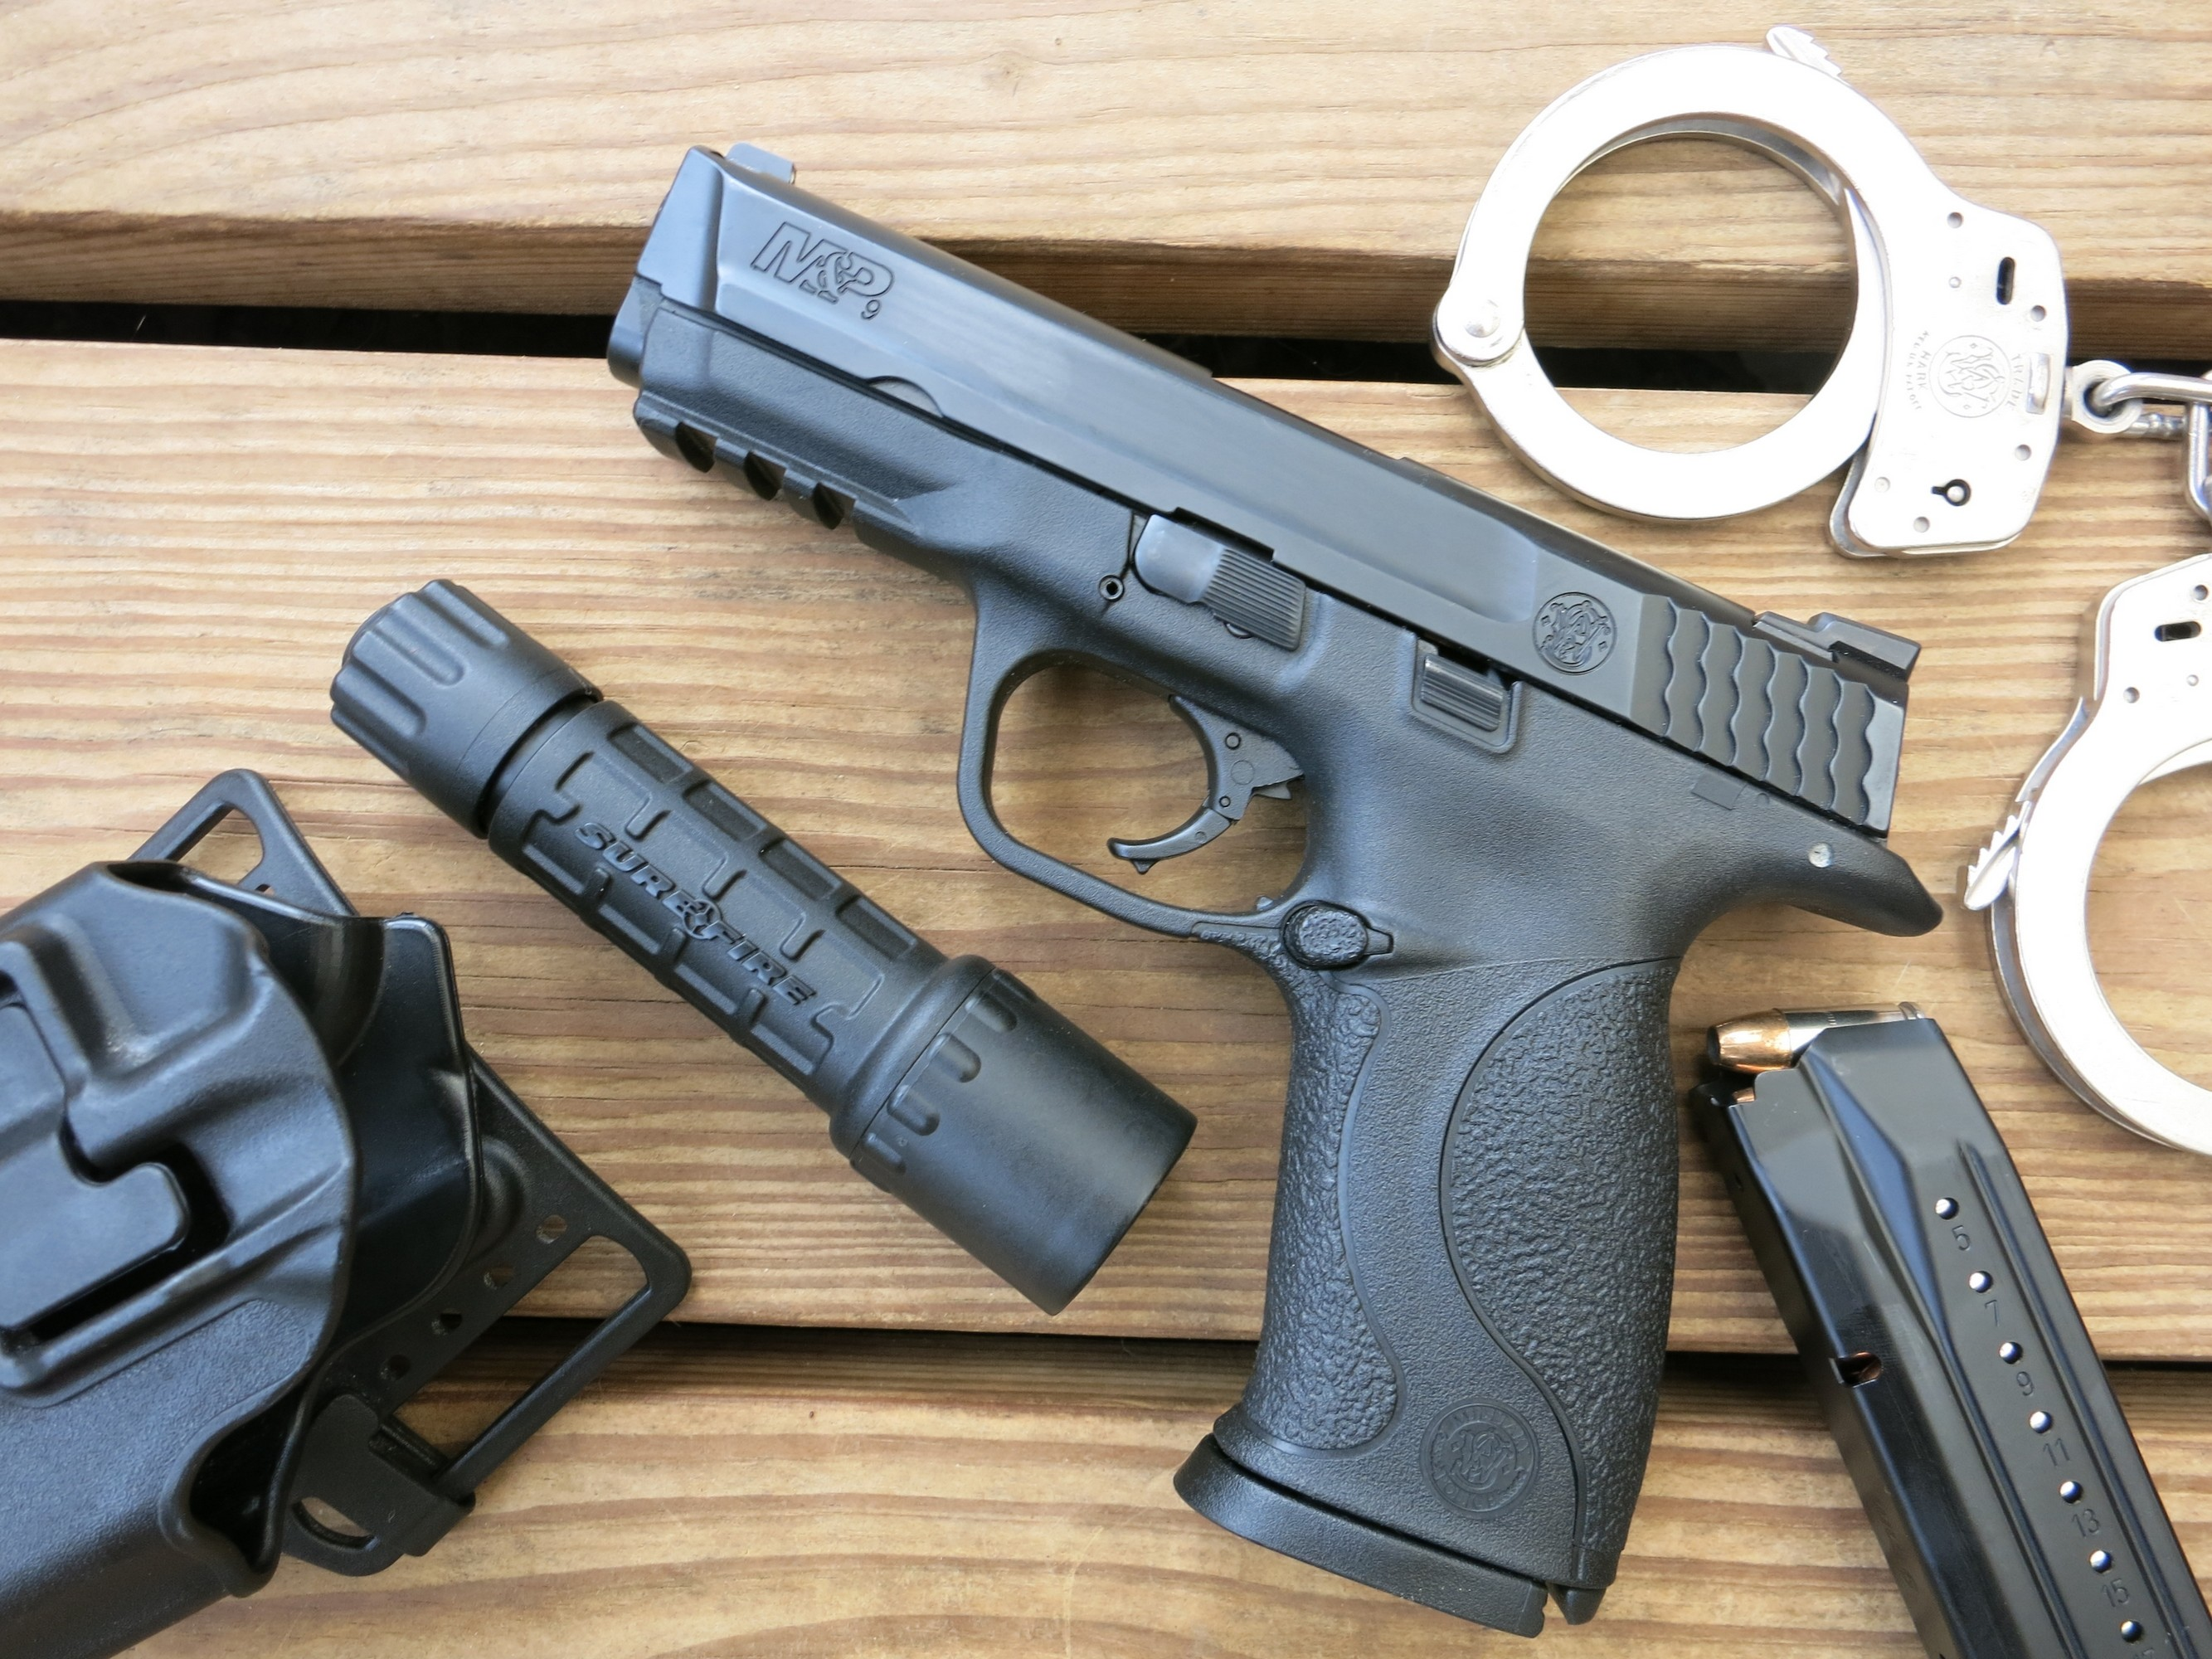 File:Smith & Wesson M&P 9 (23399778374).jpg